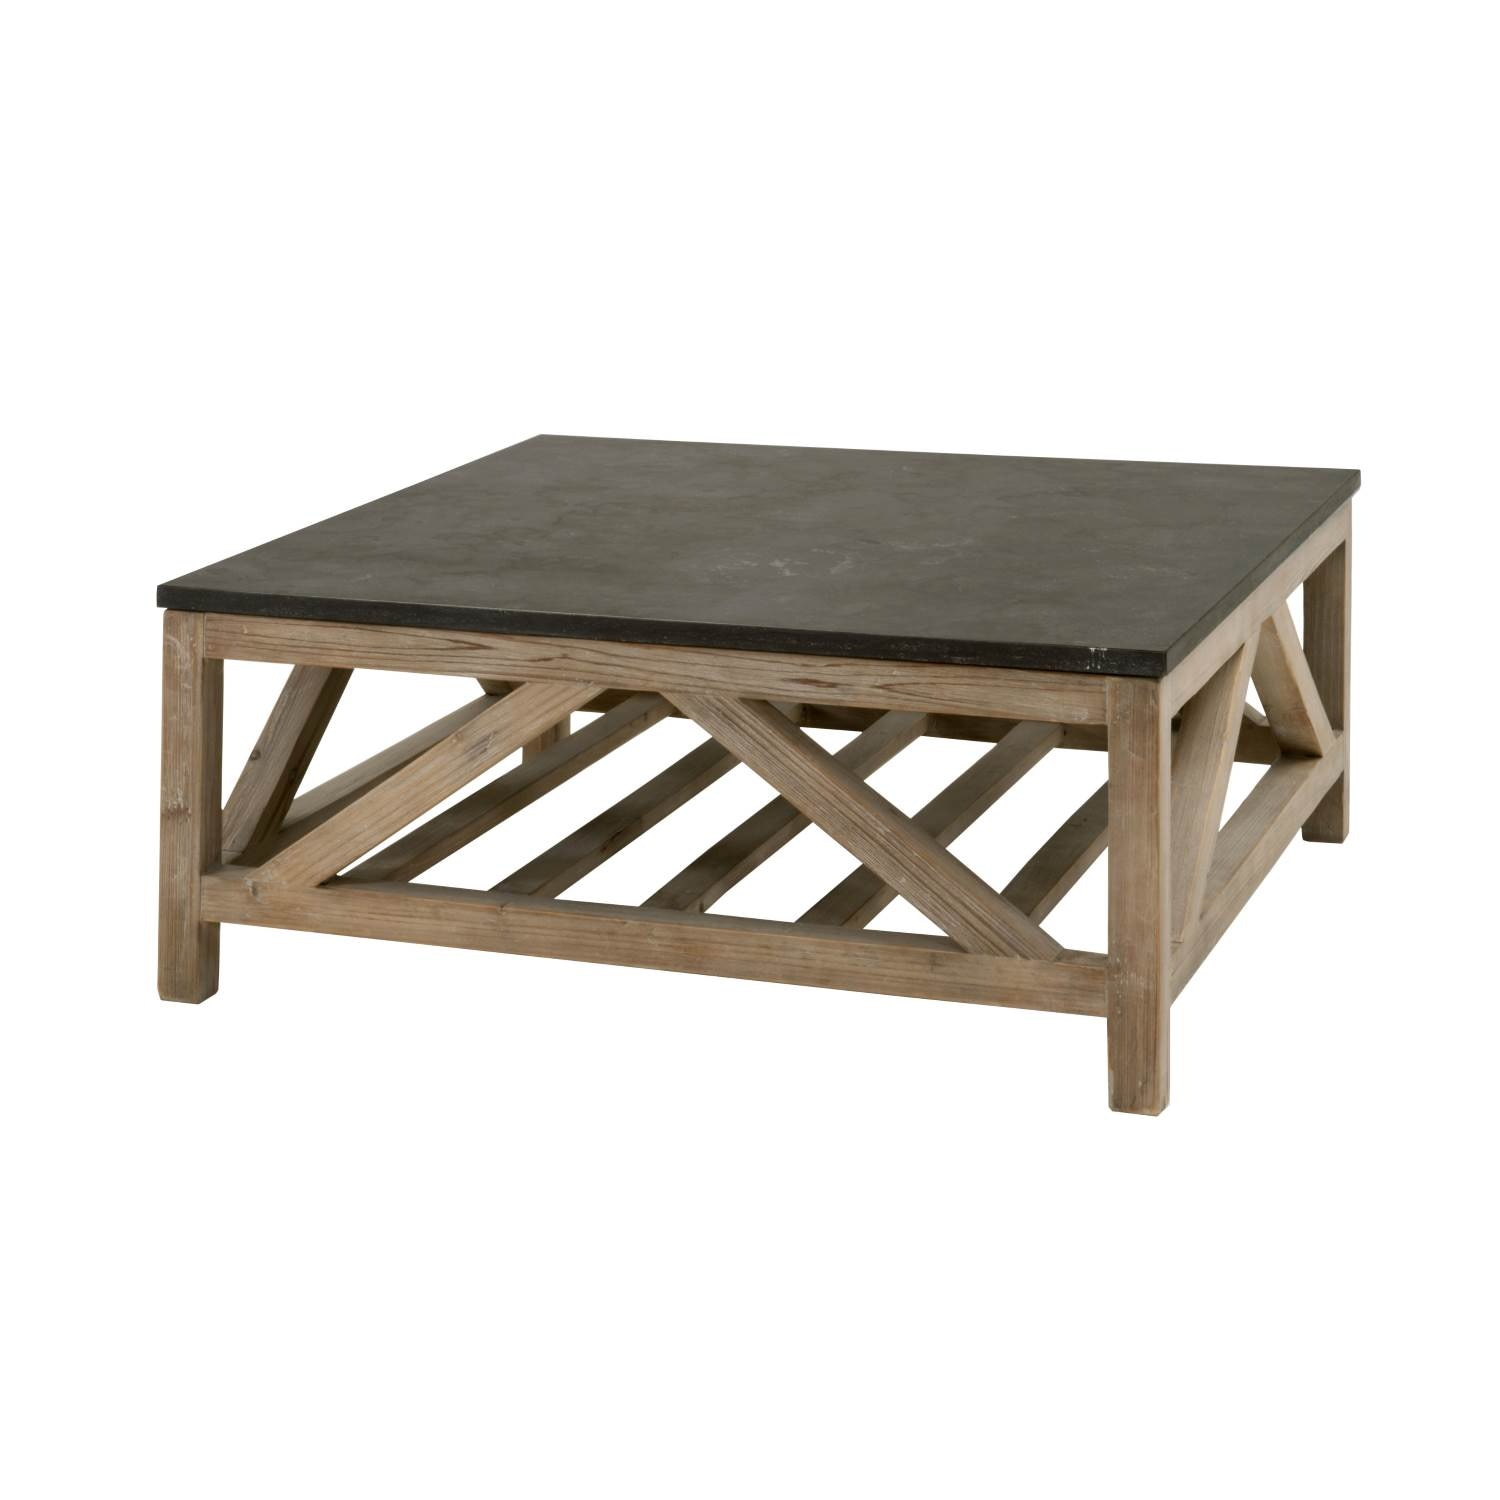 Orient Express Furniture Blue Stone Square Coffee Table 8022SQ.SGRY PN/BLU